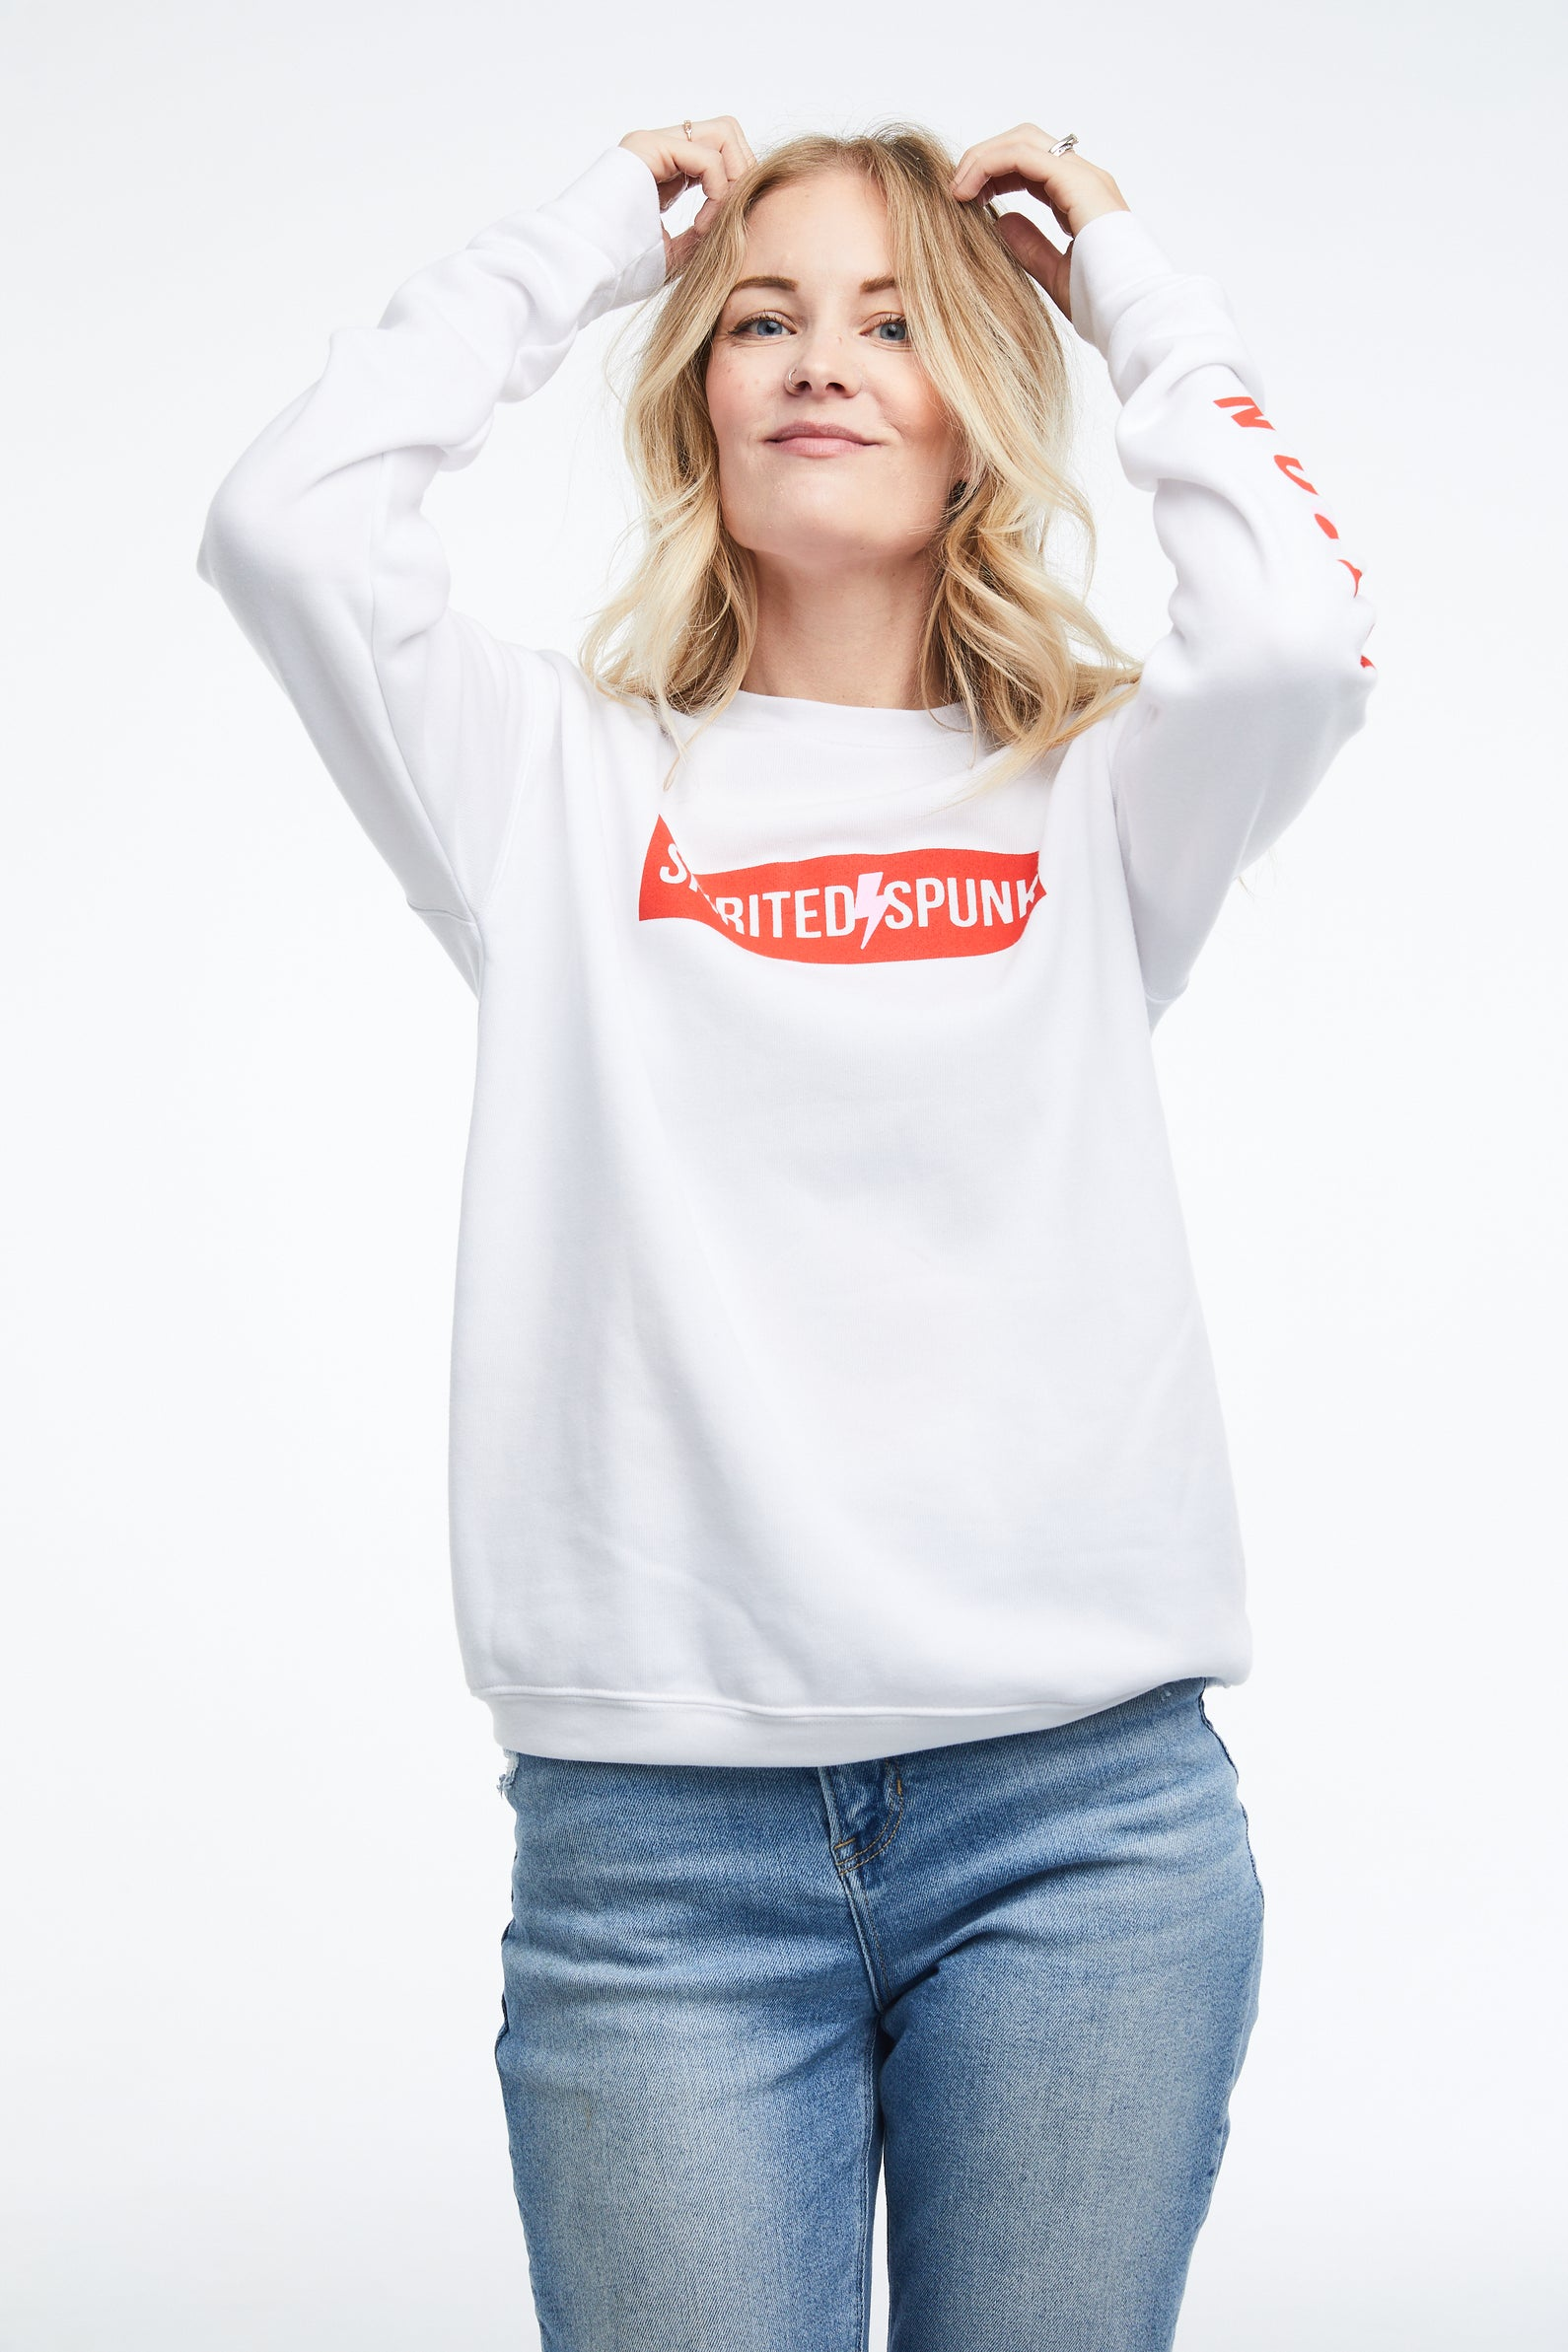 Gumption Sweatshirt